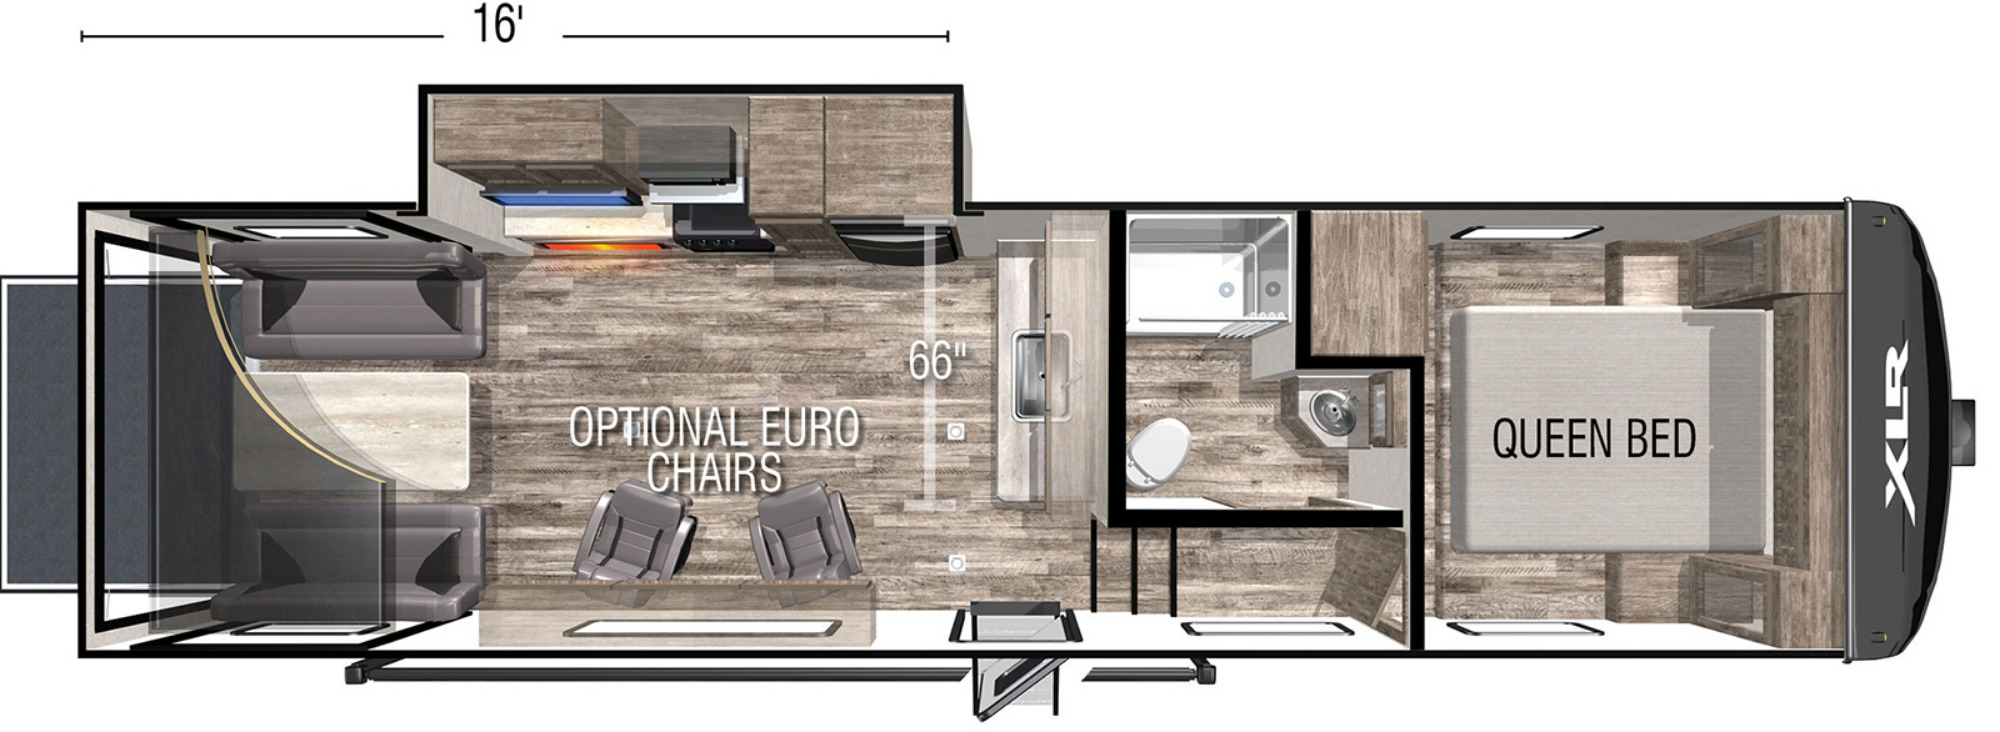 View Floor Plan for 2021 FOREST RIVER XLR BOOST 335LRLE